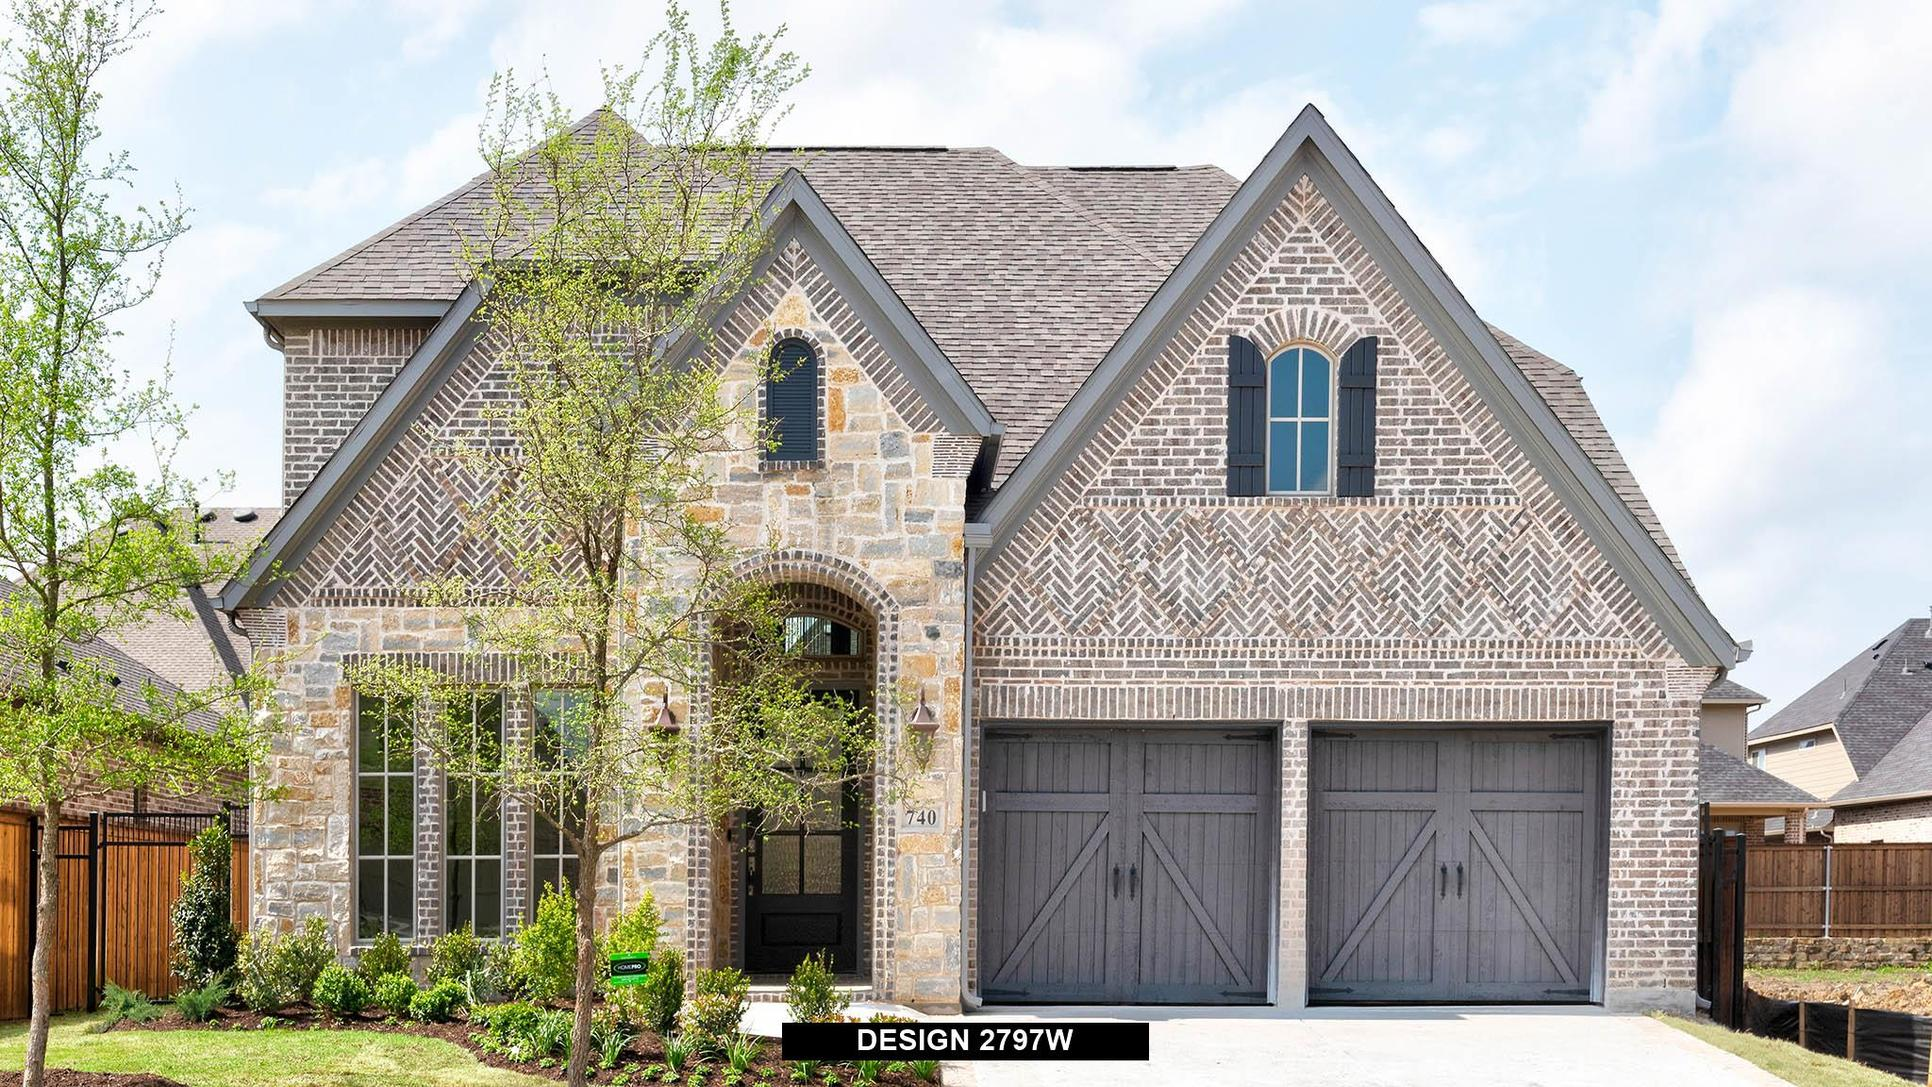 Plan 2797W:Representative photo.  Features and specifications may vary by community.